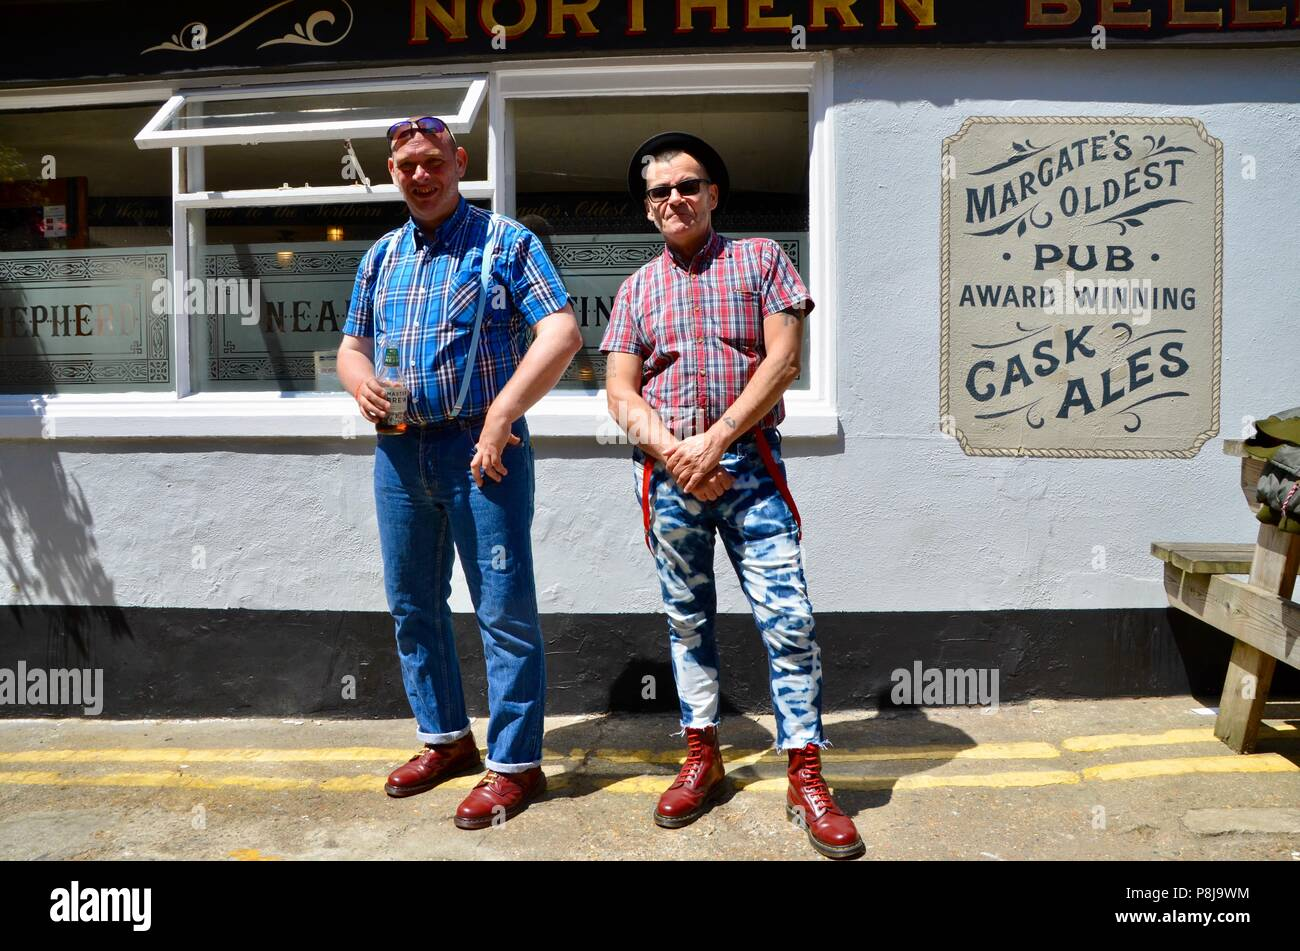 two old skinheads pose outside the northern belle pub margate kent UK - Stock Image